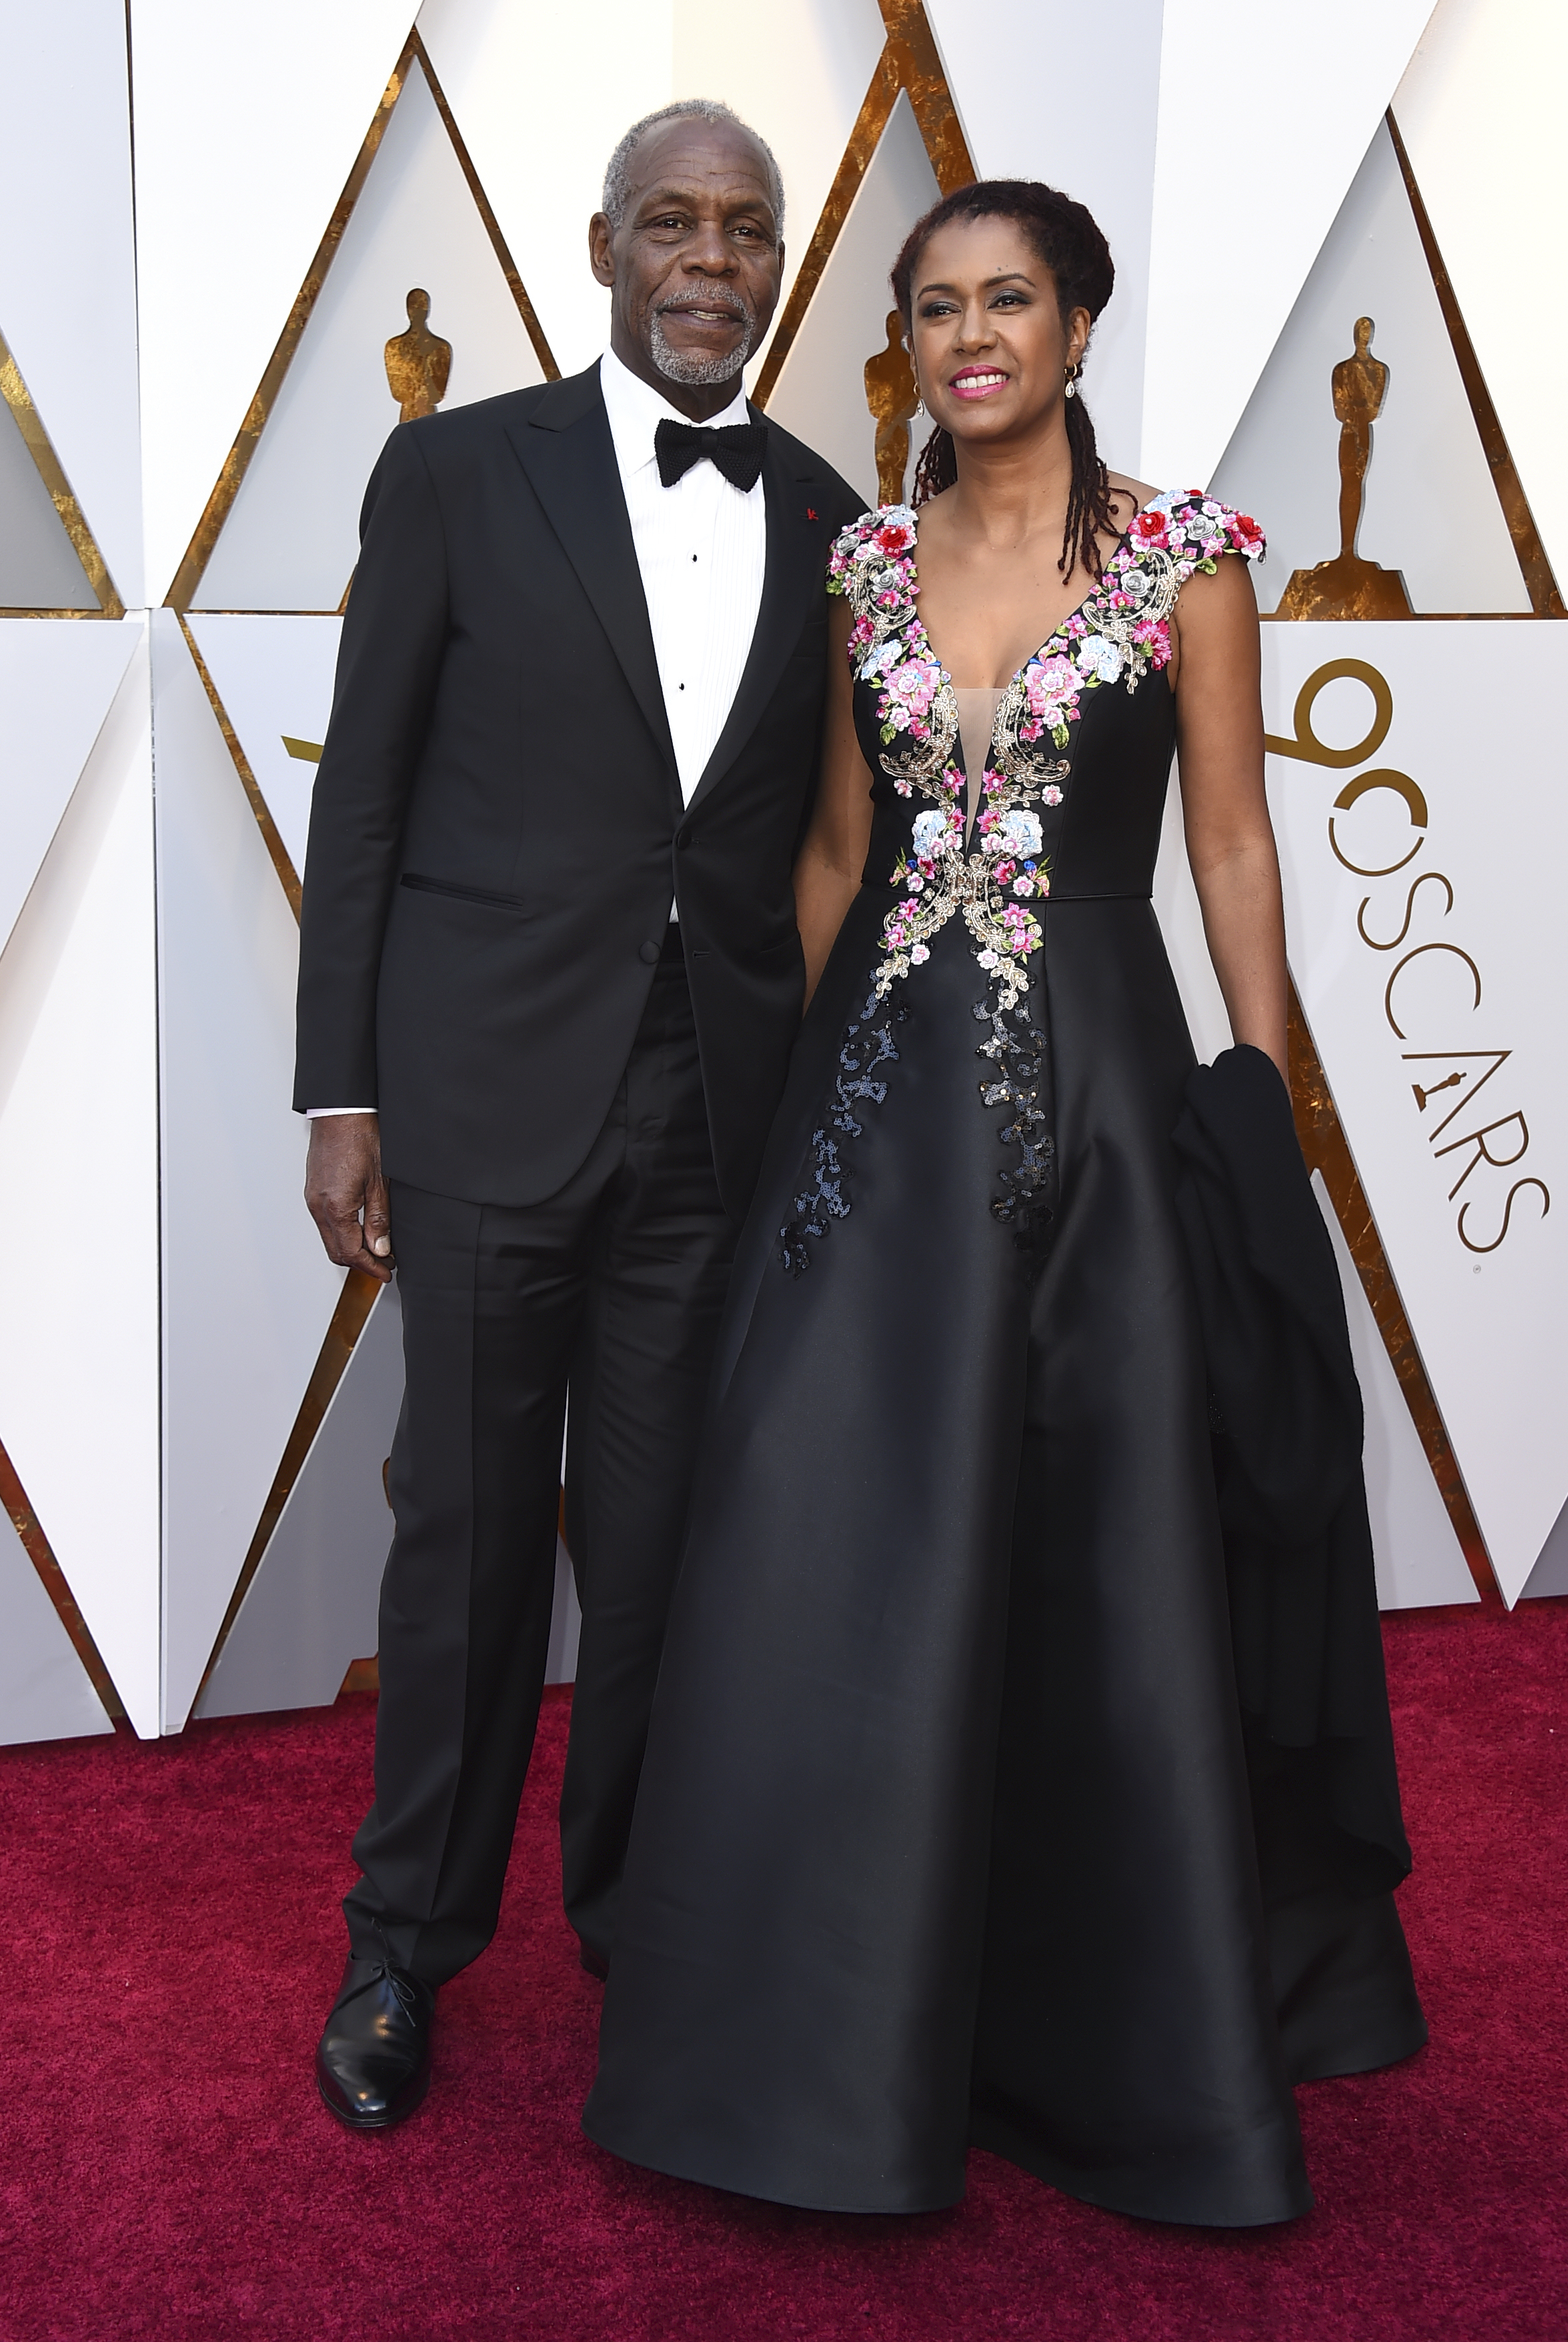 <div class='meta'><div class='origin-logo' data-origin='none'></div><span class='caption-text' data-credit='Jordan Strauss/Invision/AP'>Danny Glover, left, and Eliane Cavalleiro arrive at the Oscars on Sunday, March 4, 2018, at the Dolby Theatre in Los Angeles.</span></div>